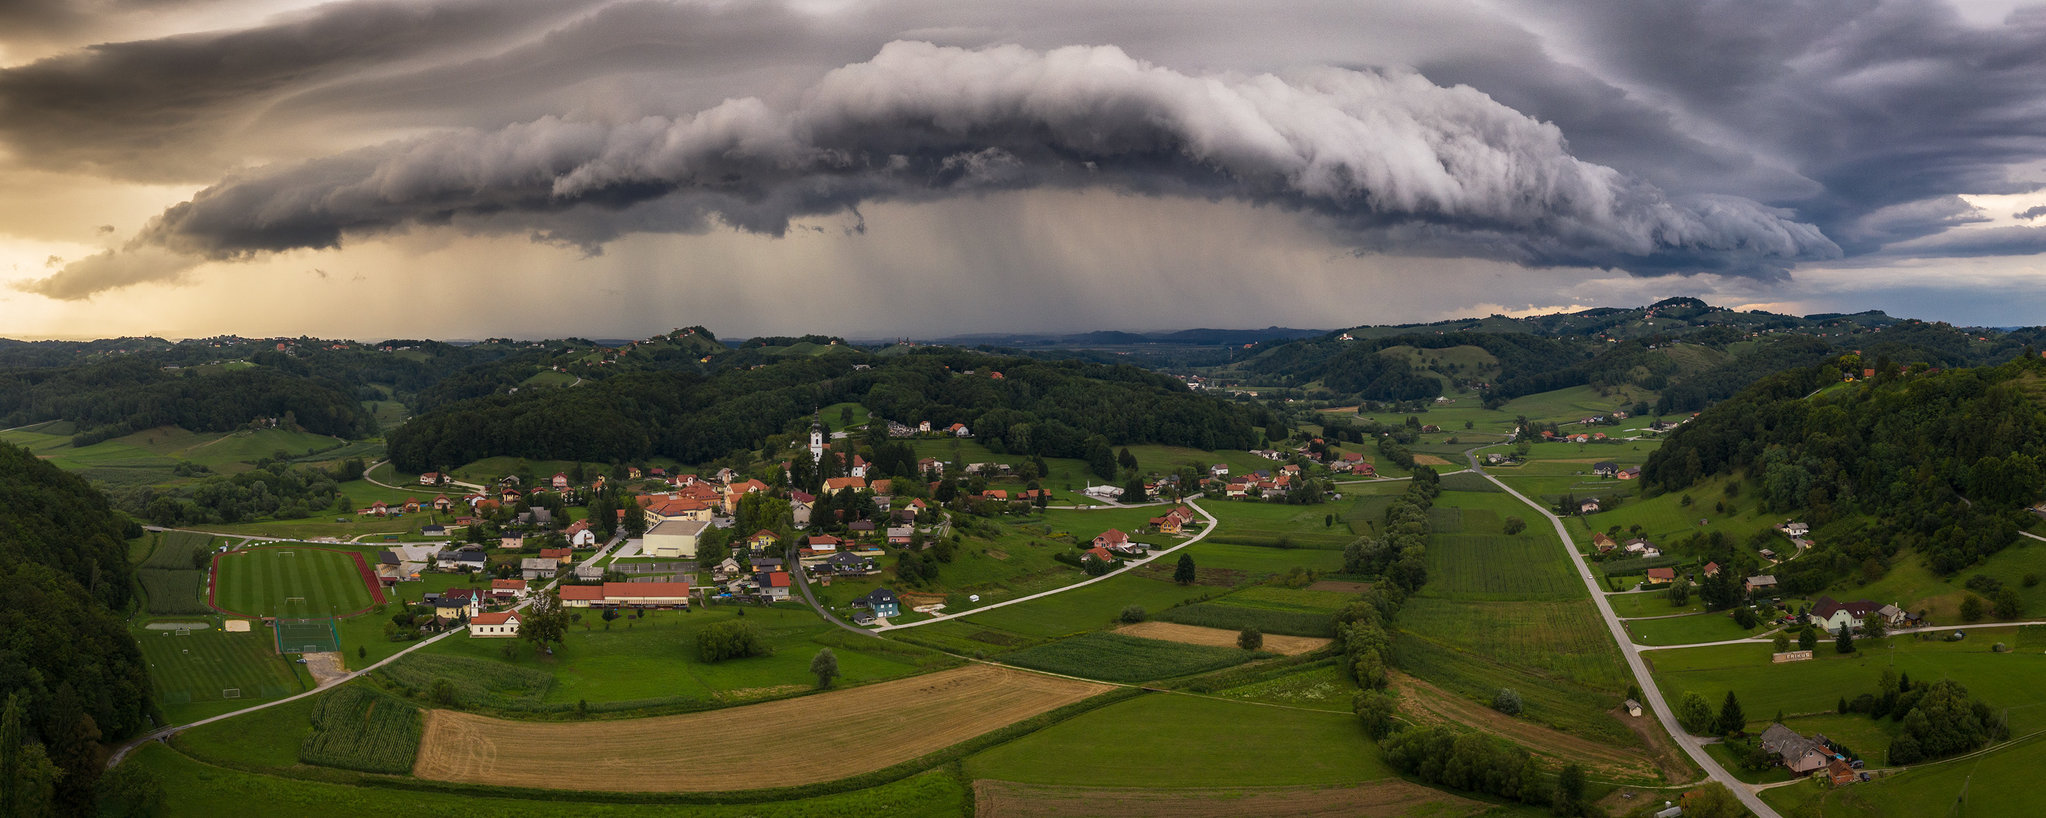 Shelf cloud nad Cirkulanami